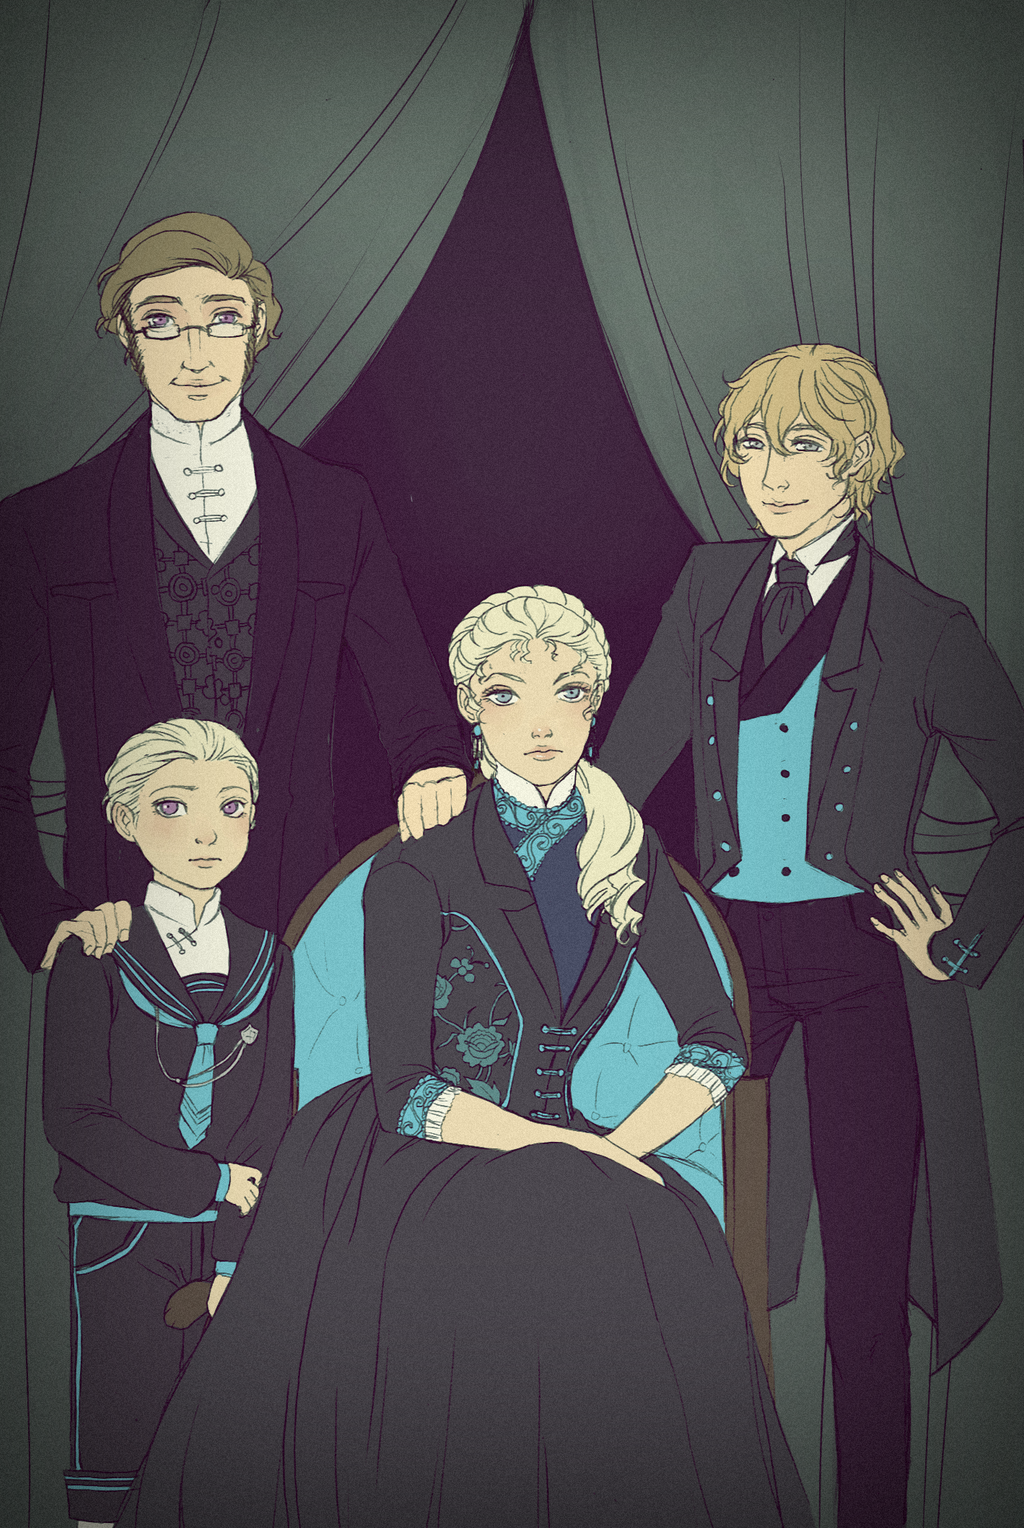 VT: Family Portrait by Dhirento